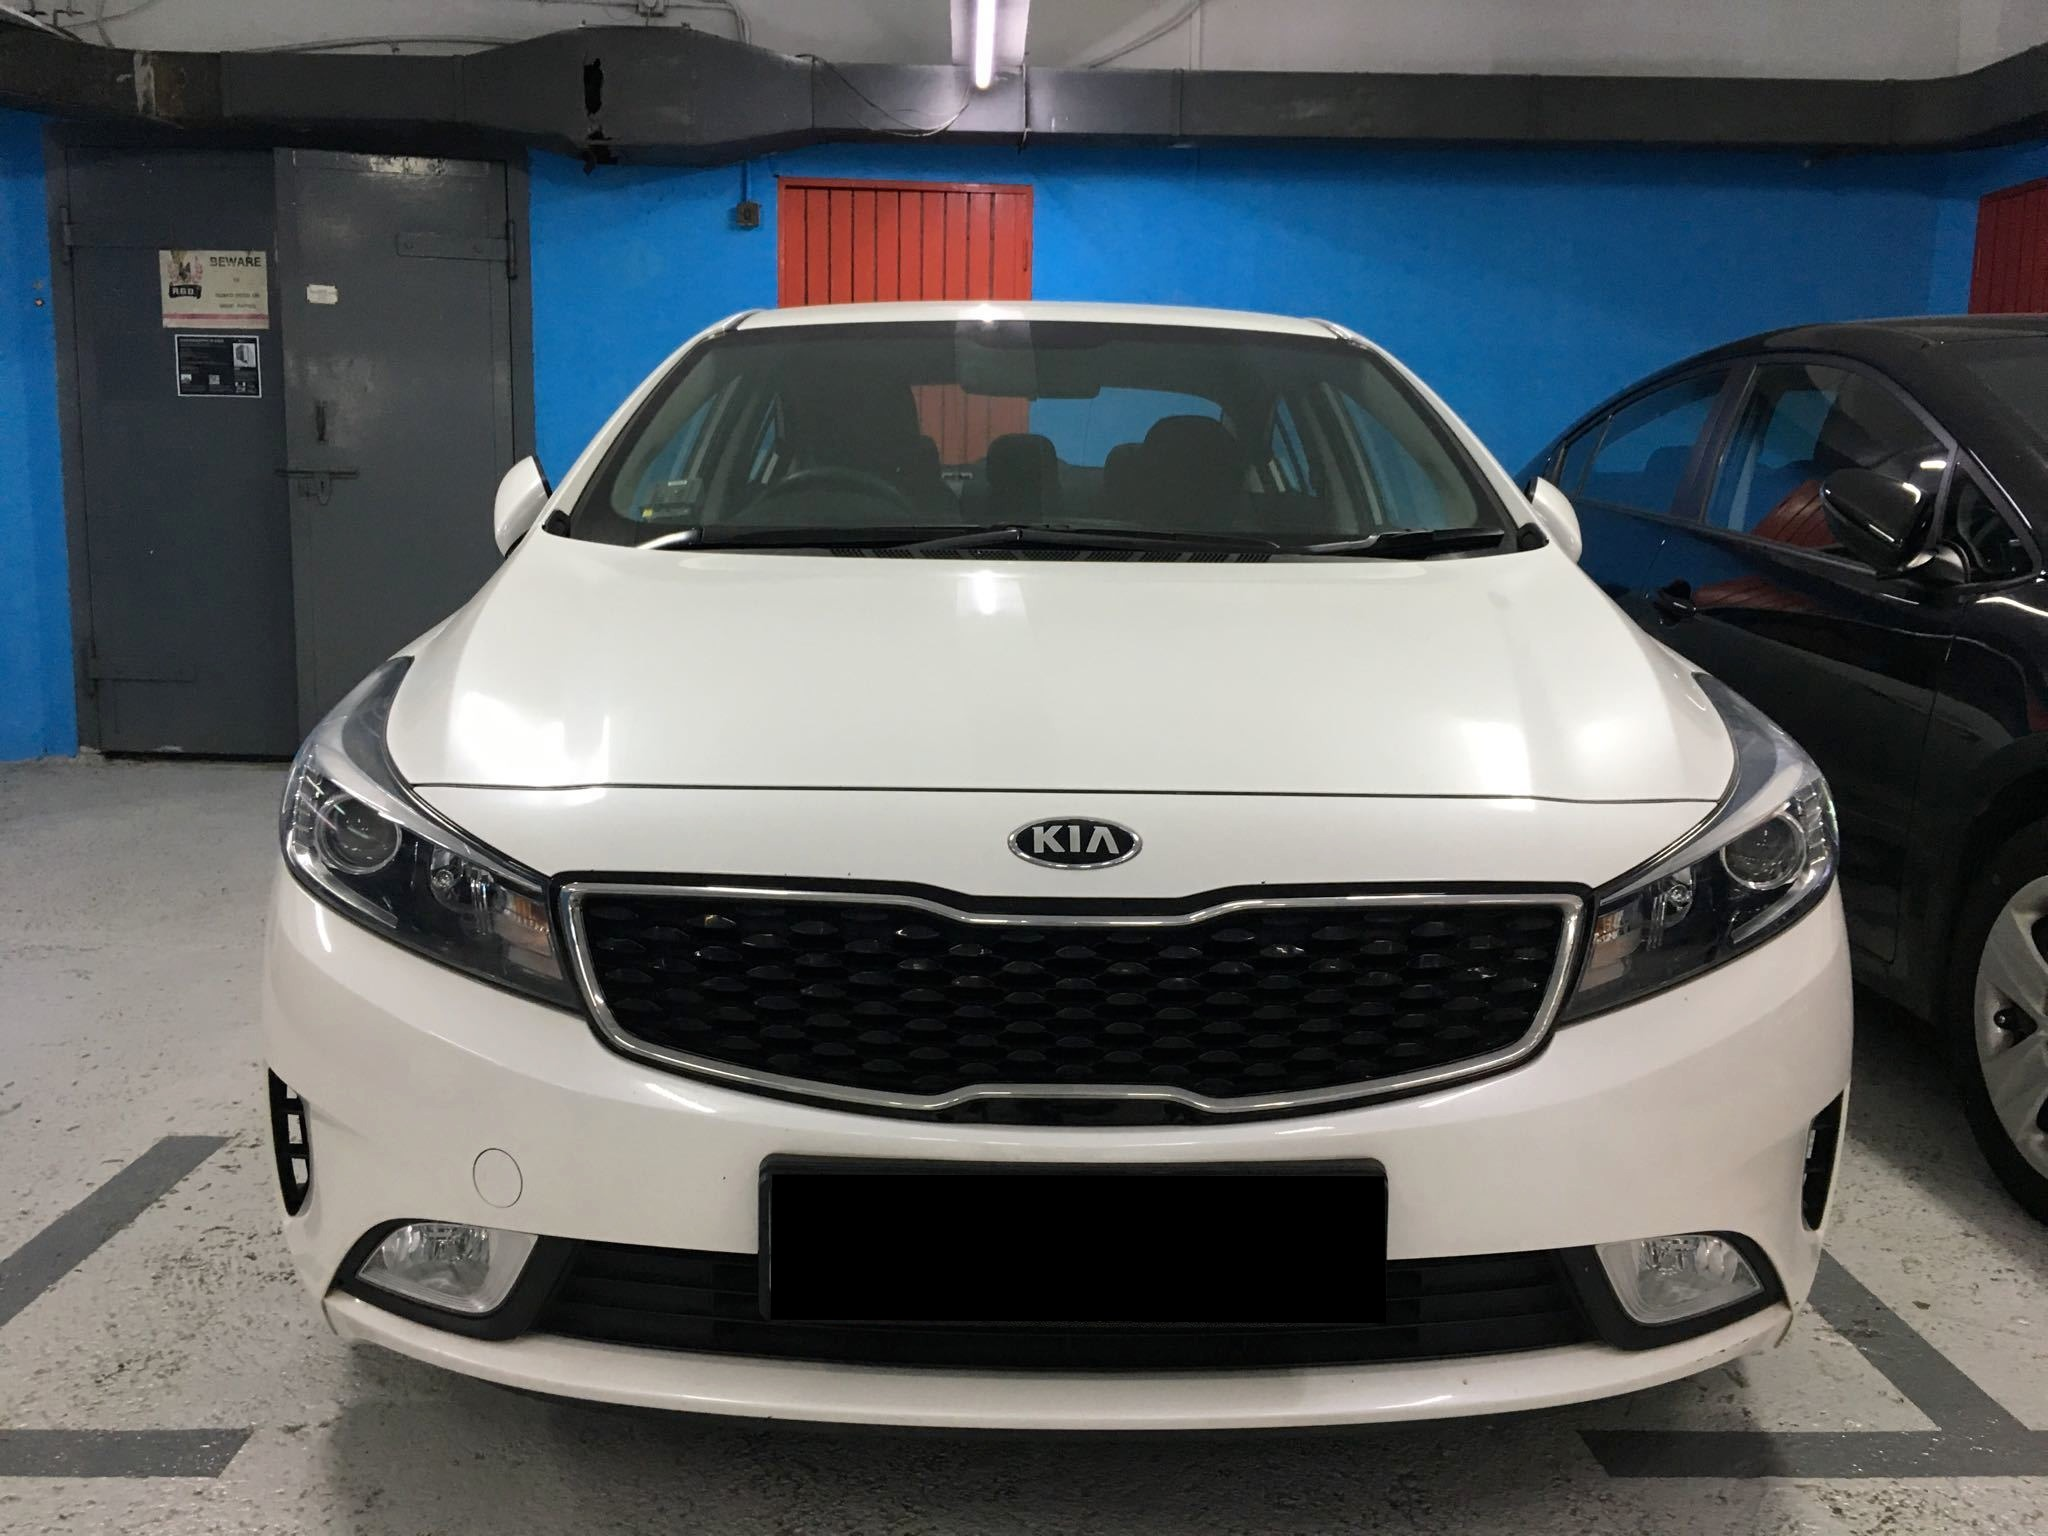 Kia Cerato K3 16 Auto L Cars For Sale On Carousell 2013 Under Hood